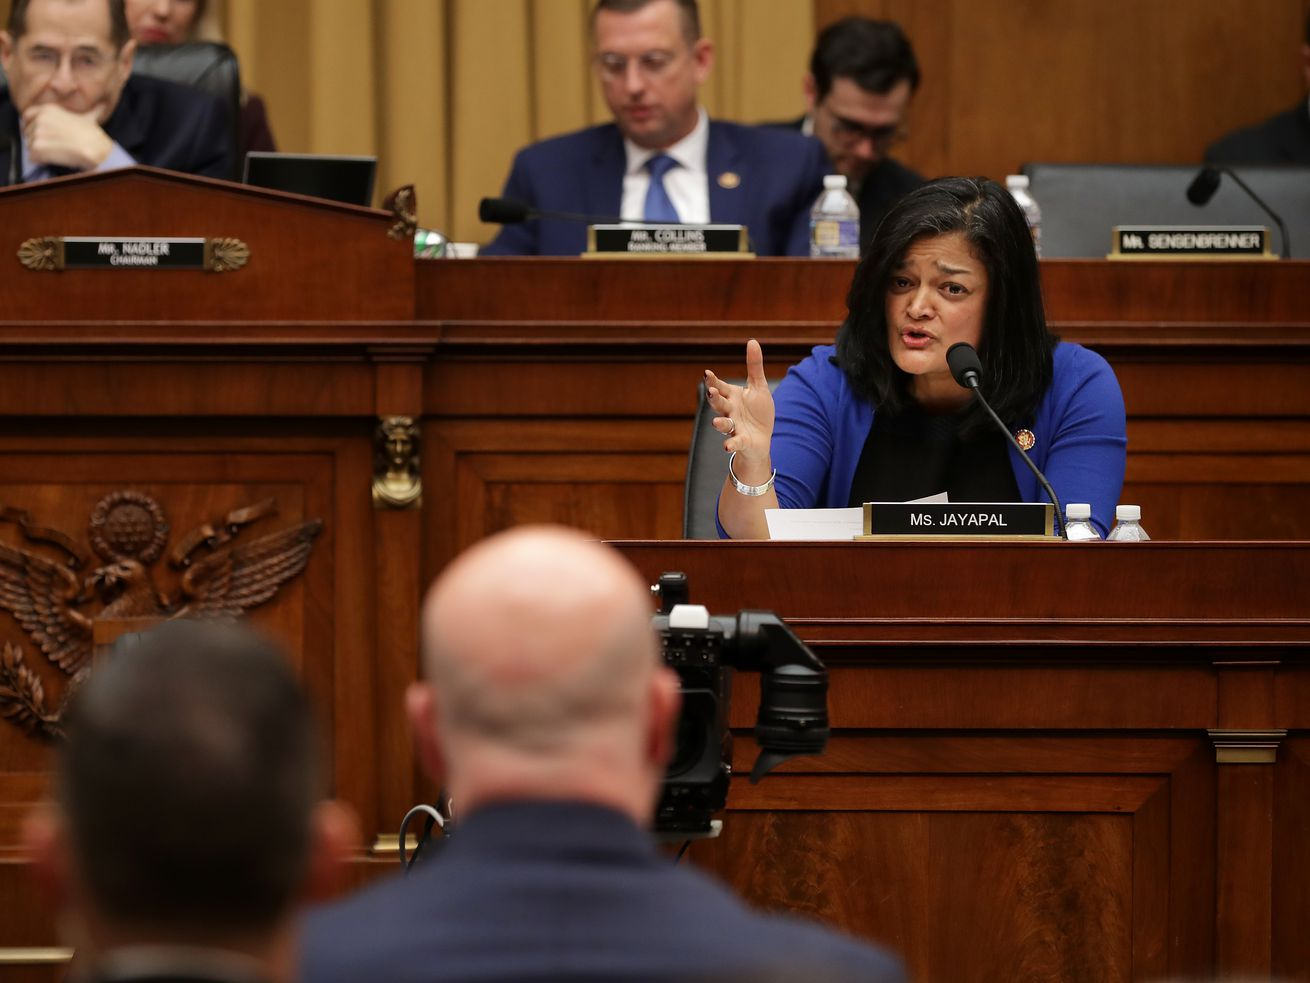 House Judiciary Committee member Pramila Jayapal (D-WA) questions acting Attorney General Matthew Whitaker on Capitol Hill on February 08, 2019.